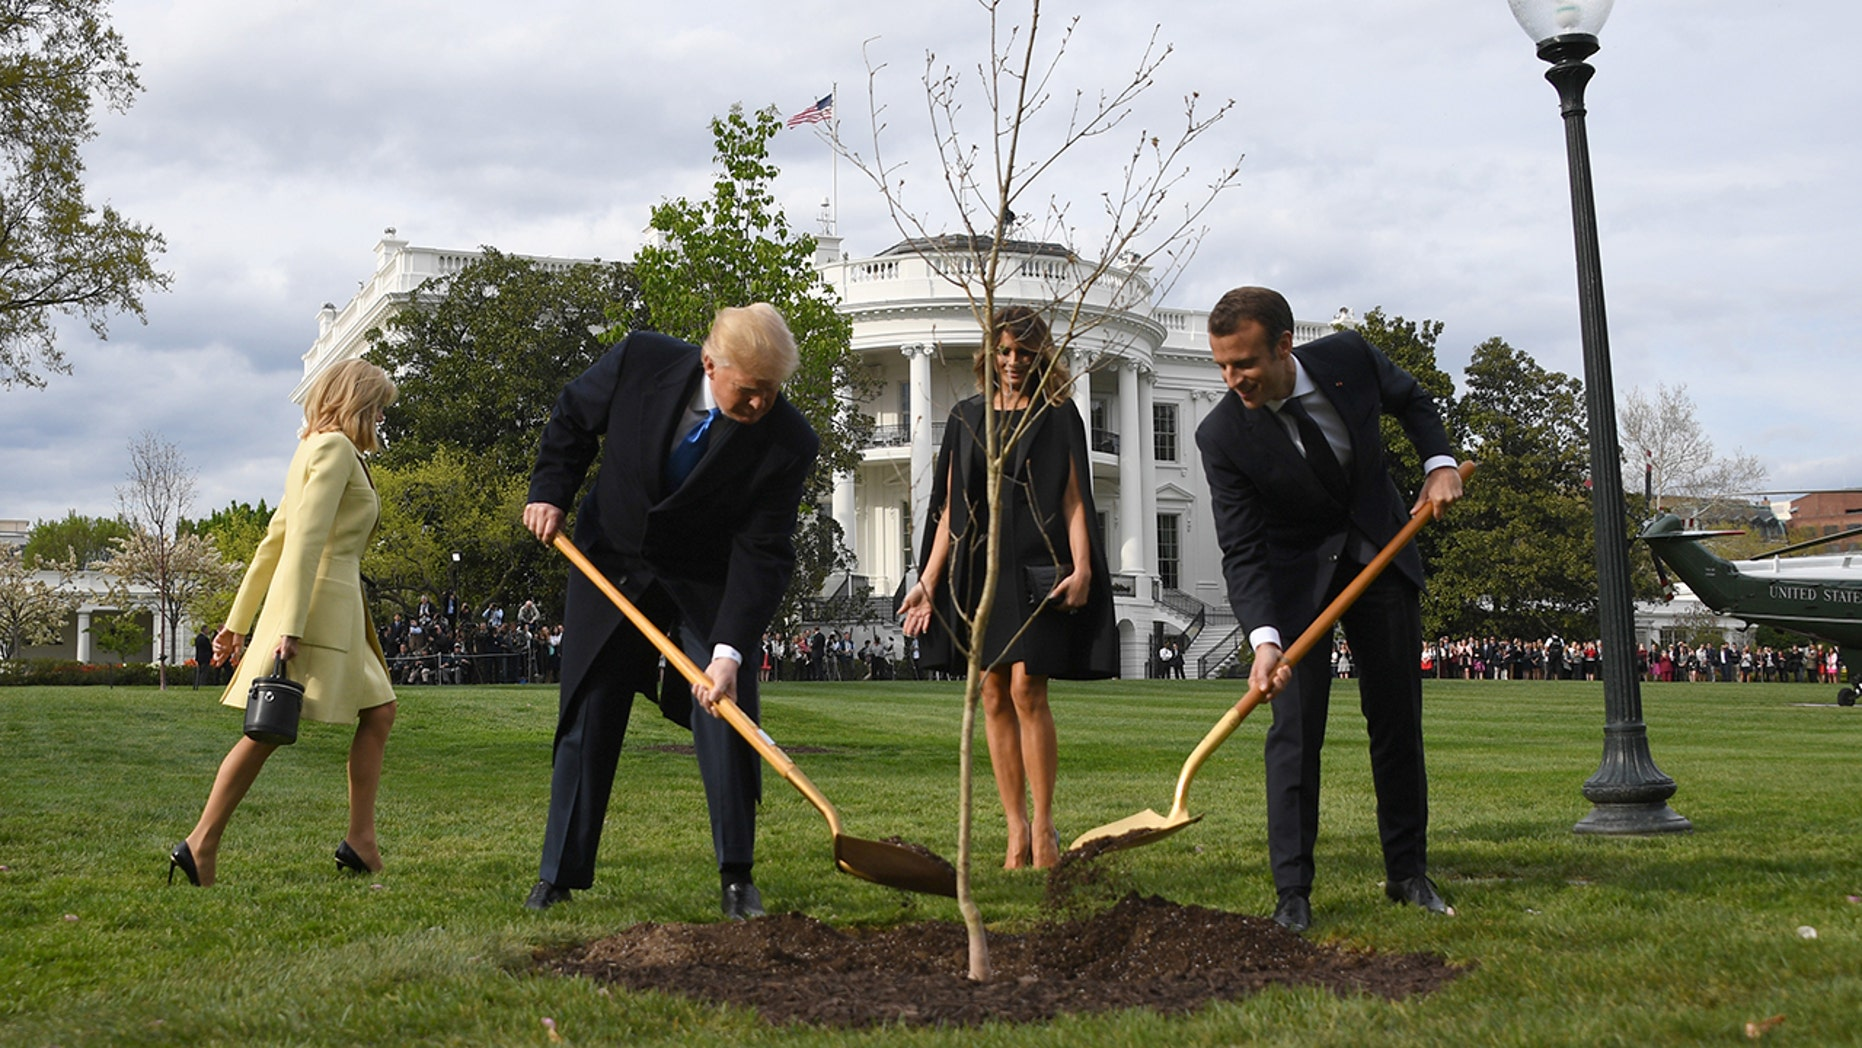 President Trump and first lady Melania Trump participate in a tree planting ceremony with French President Emmanuel Macron and his wife Brigitte Macron on the South Lawn of the White House in Washington, DC, on April 23, 2018. (JIM WATSON/AFP/Getty Images)